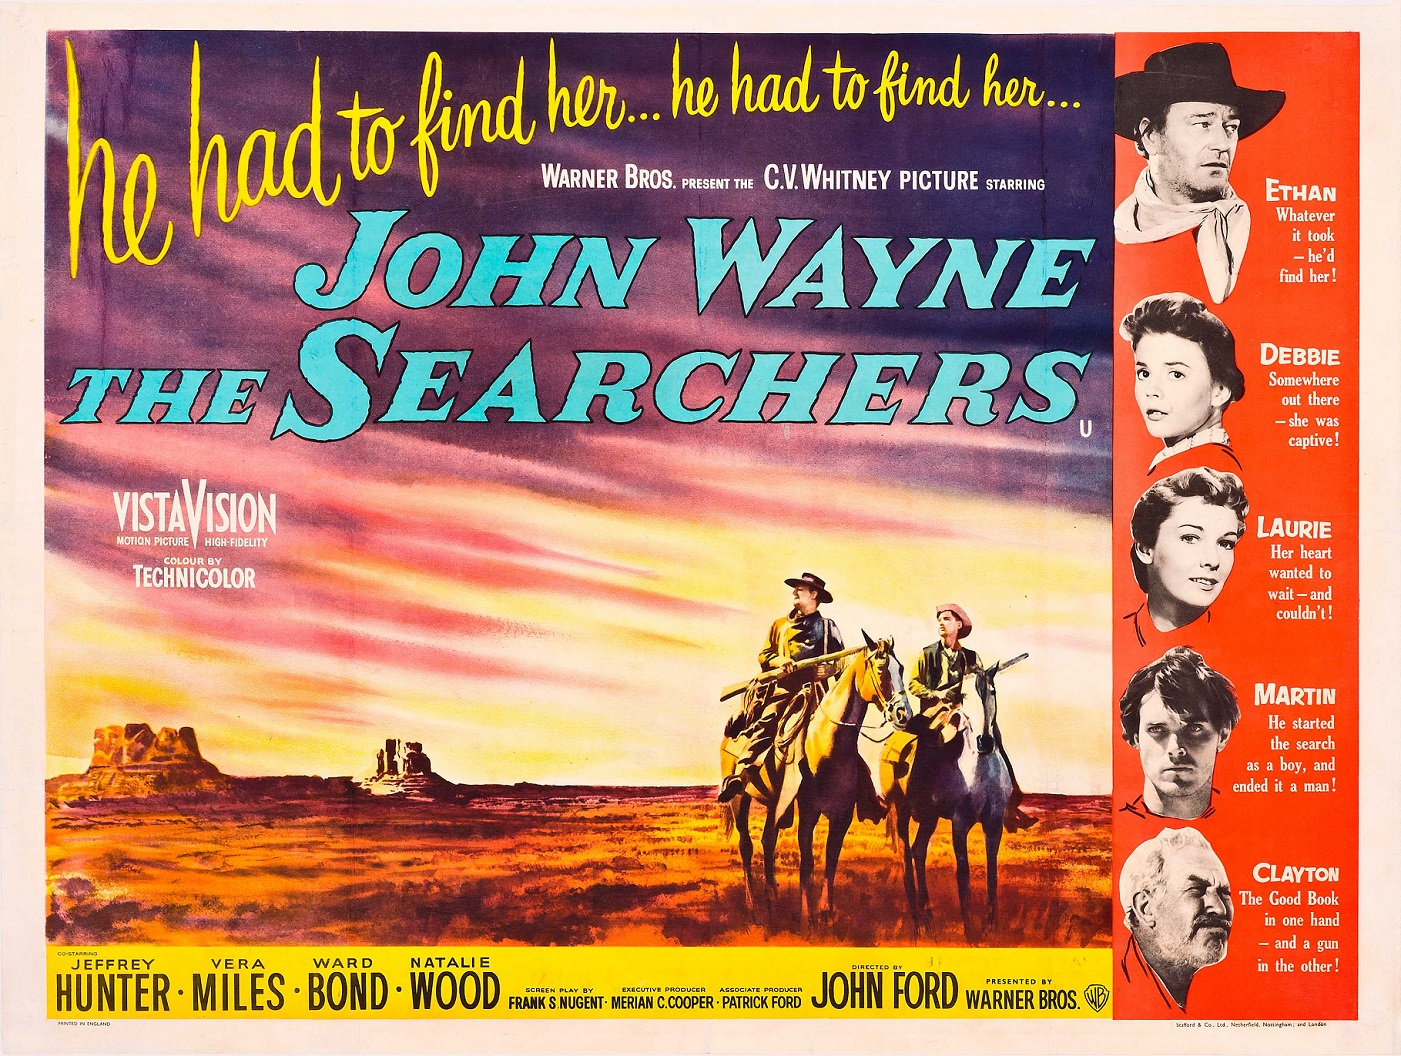 THE SEARCHERS (1956) WEB SITE